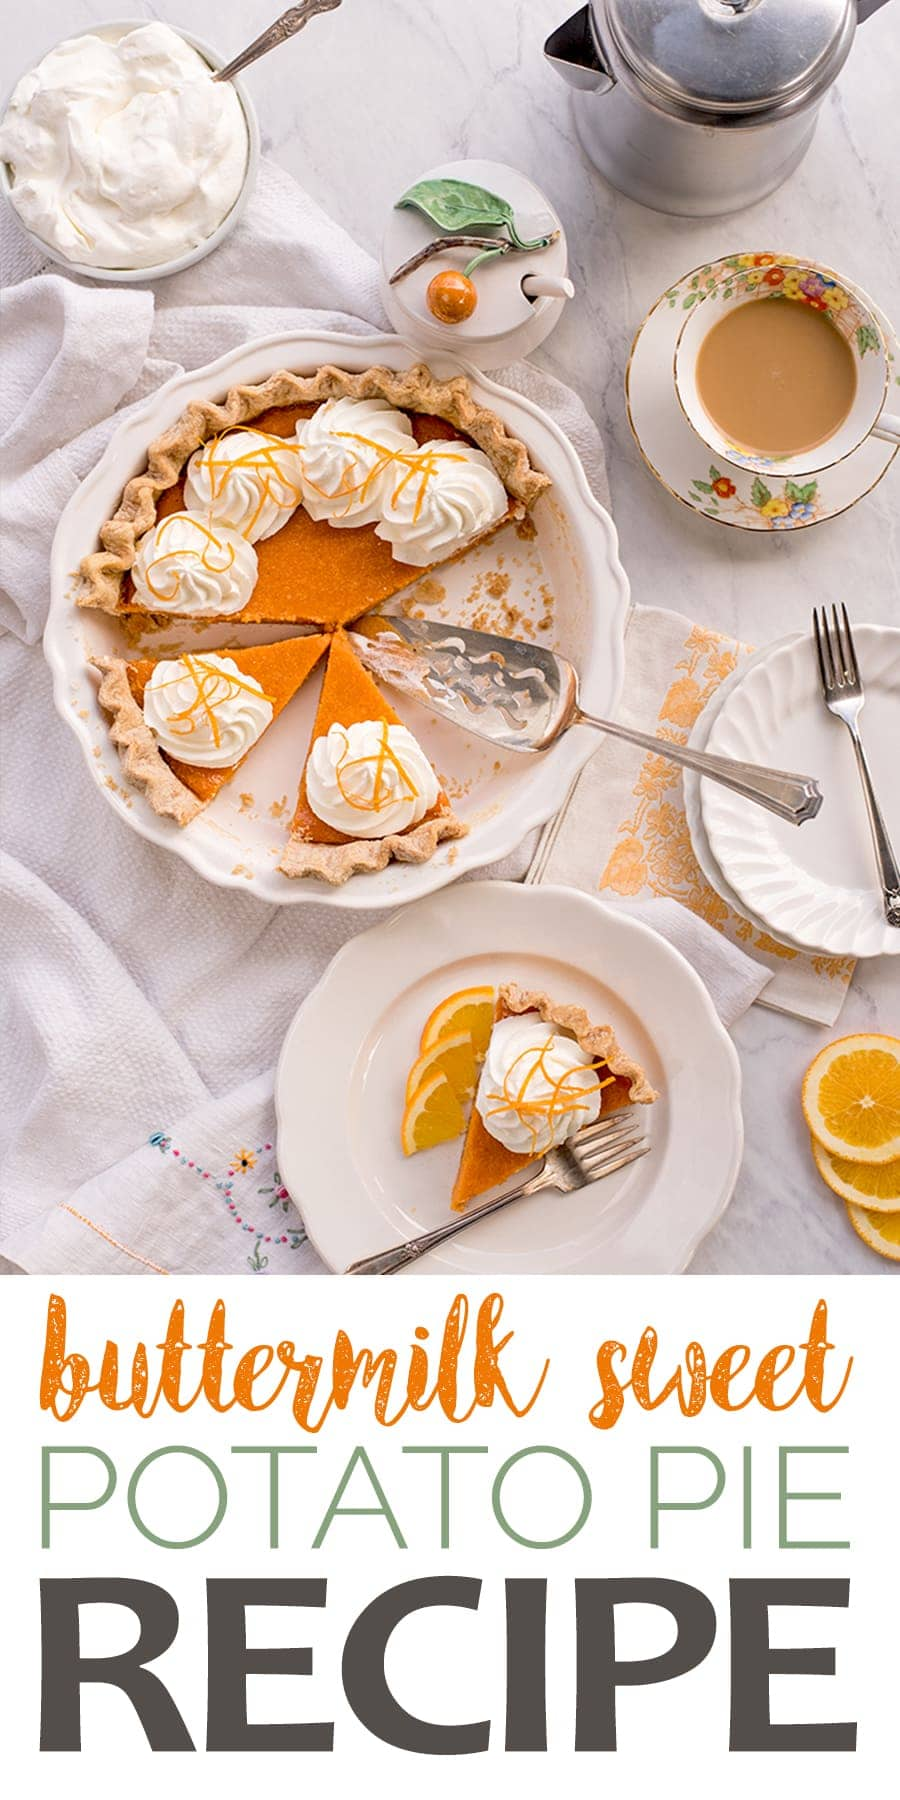 This twist on a classic Southern pie will have you begging for seconds! Buttermilk Sweet Potato Pie is sweet, citrusy and surprisingly easy to make! #sweetpotatopie #pie #sweetpotato #dessertrecipes #pieseason #buttermilkpie